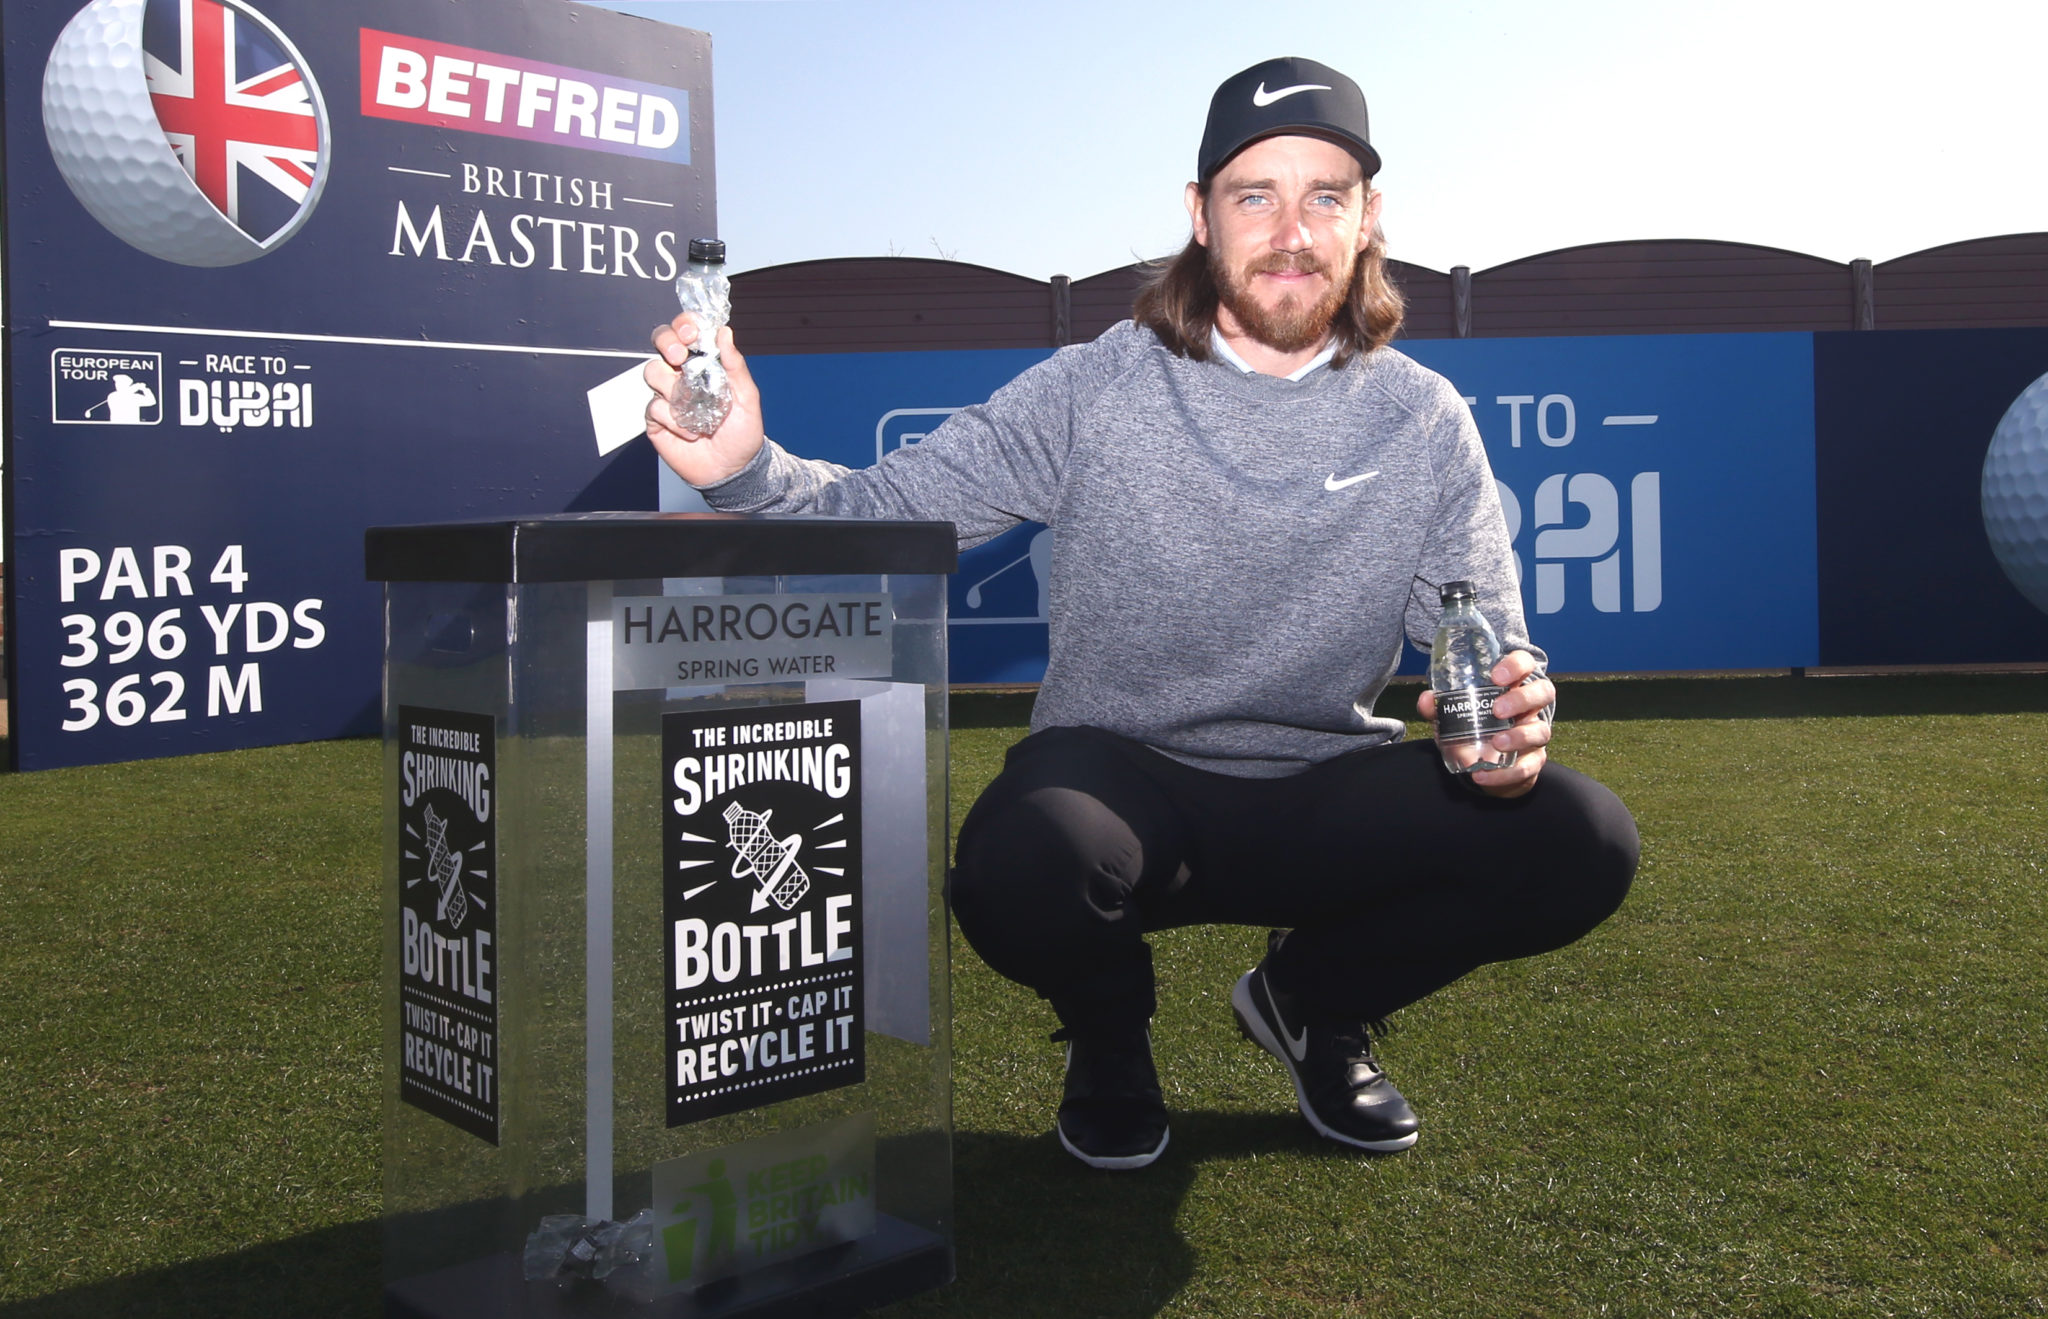 Tommy Fleetwood showing sustainability at the British Masters